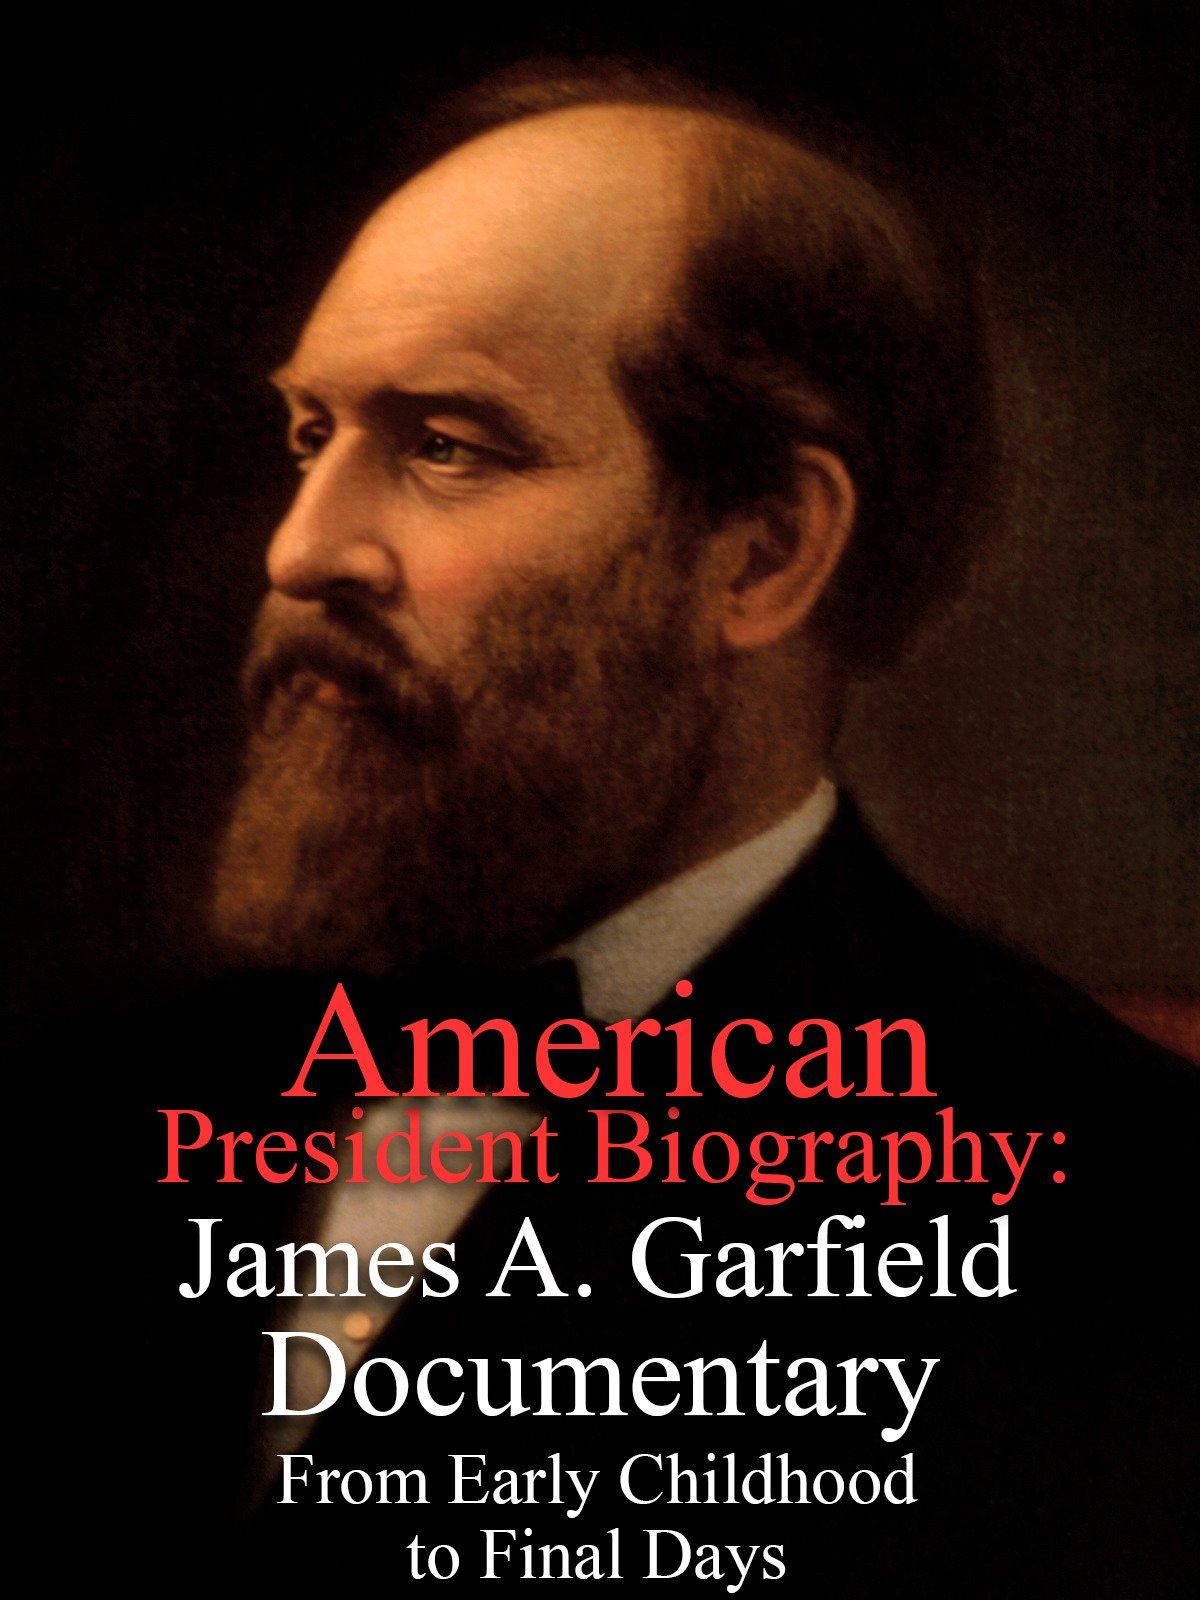 American President Biography: James A. Garfield Documentary From Early Childhood to After Office